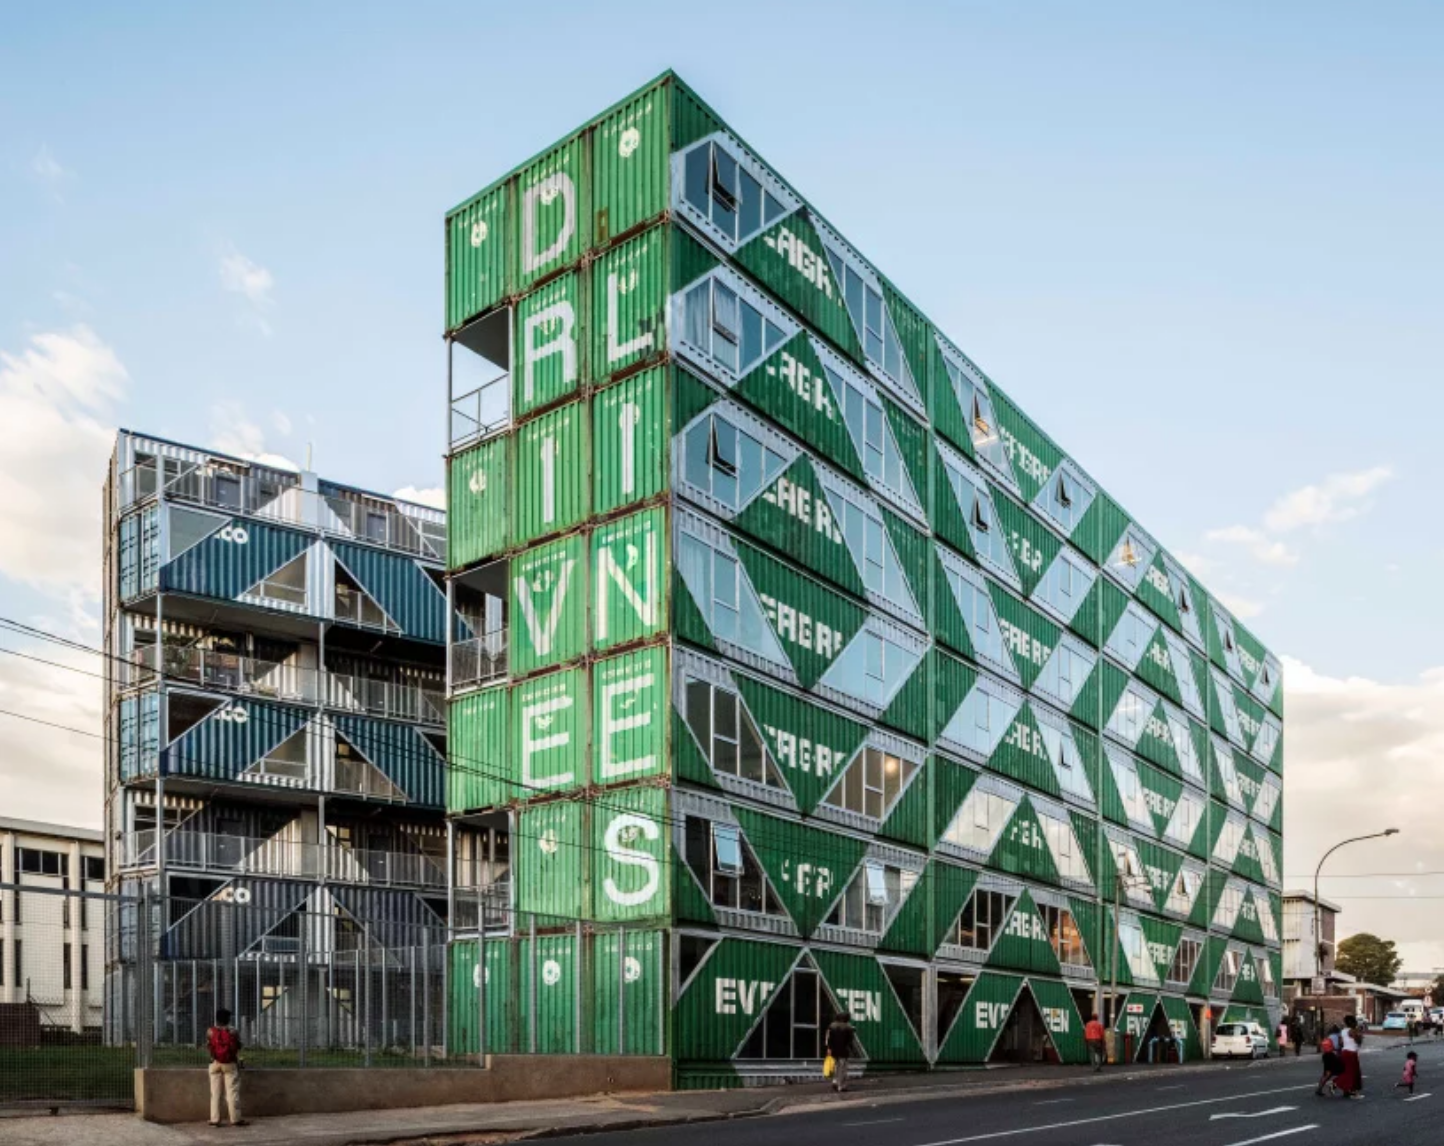 Green shipping container building on busy street